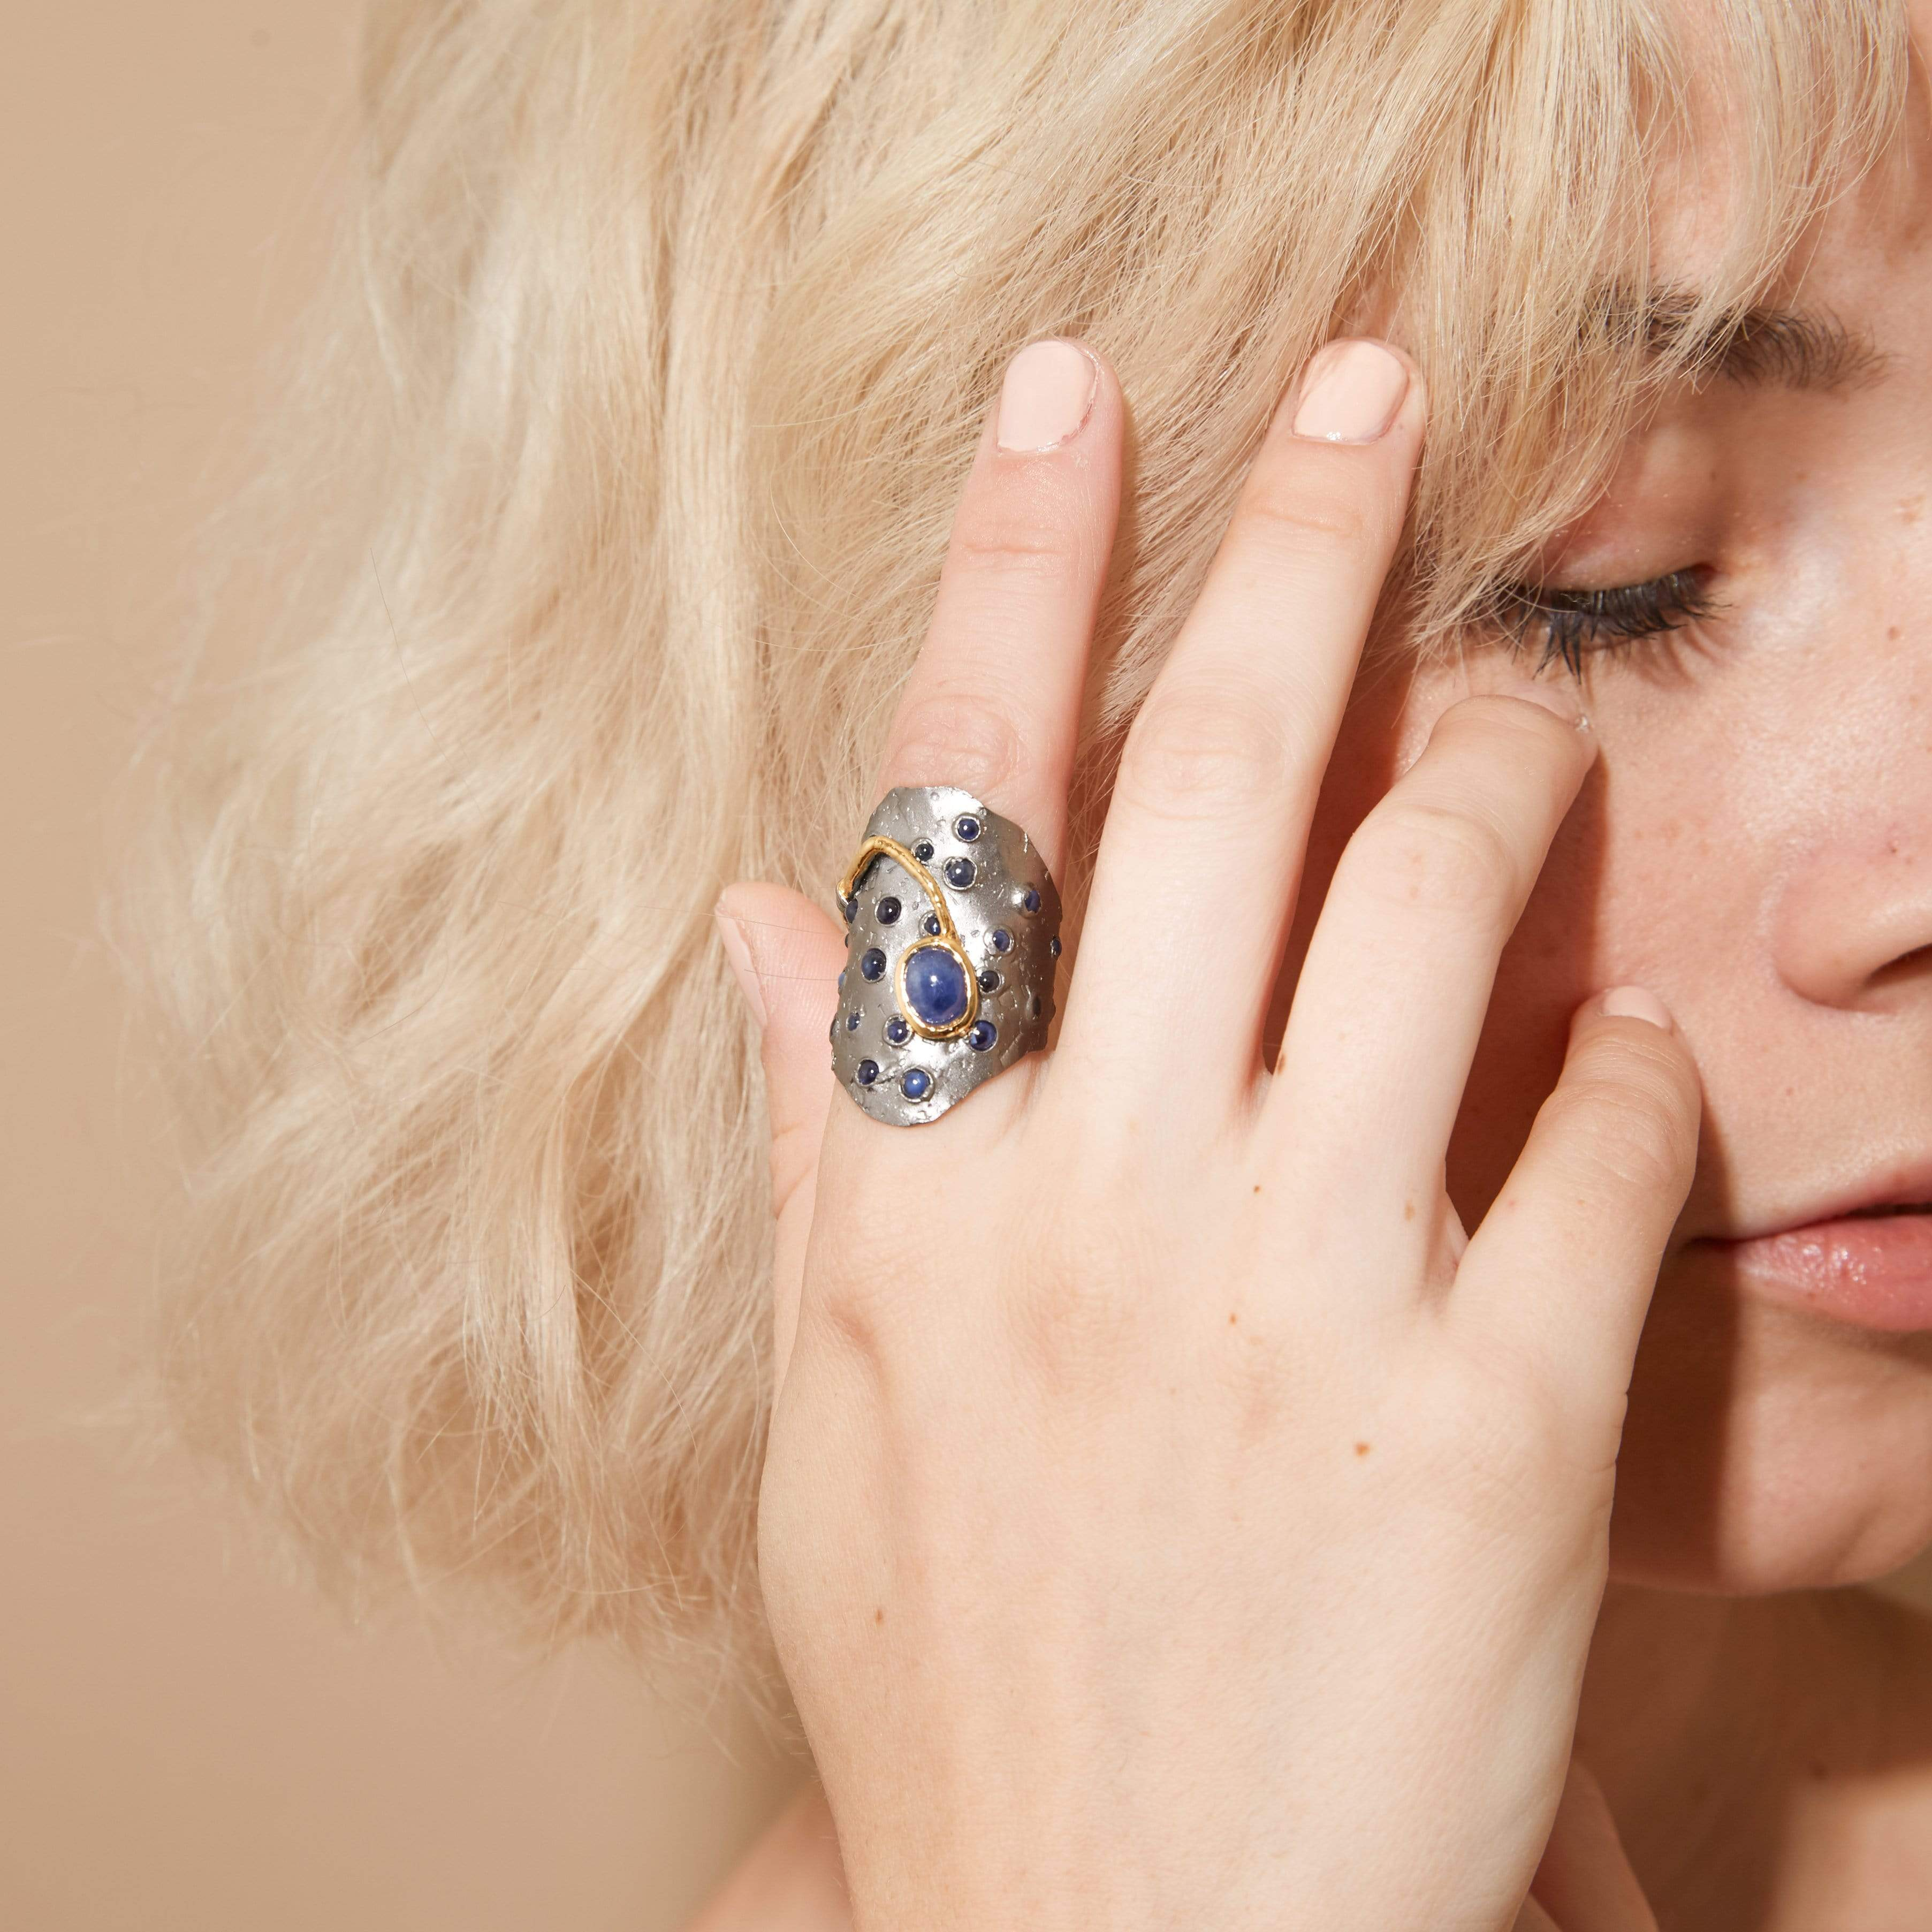 Faula Ring, Exclusive, Gold, gray, Rhodium, Sapphire, spo-disabled, StoneColor:DeepBlue, Style:Everyday, Type:StoneCandyScattered Ring